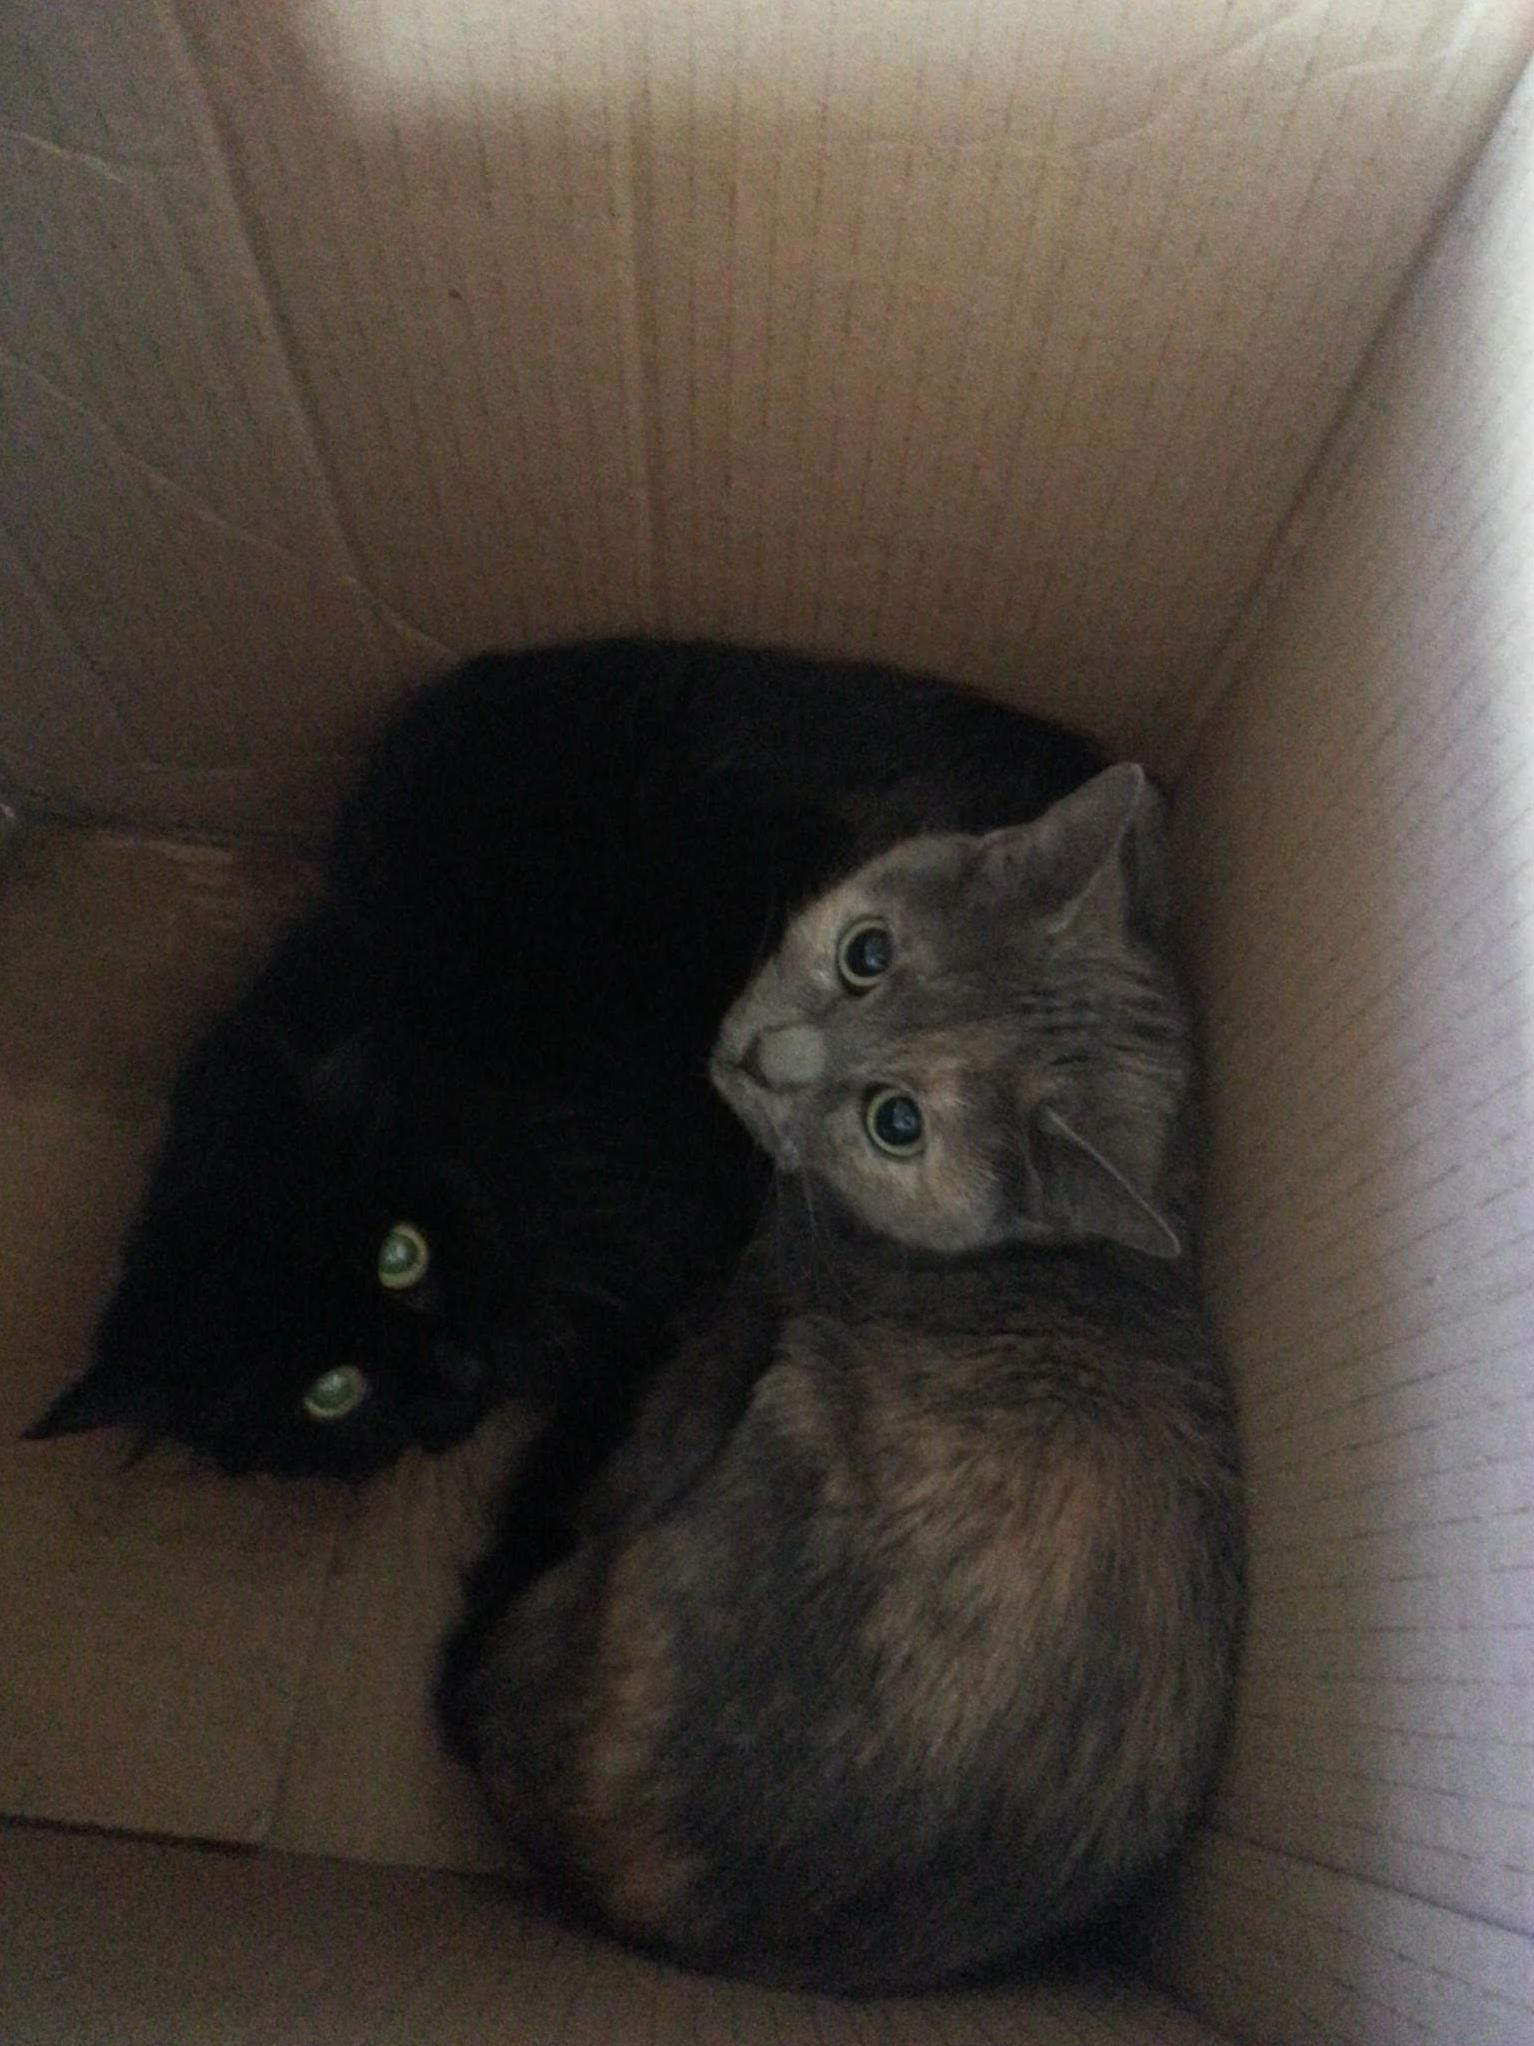 Babies abandoned in a taped up cardboard box this morning. finding homes now. people are terrible sometimes.